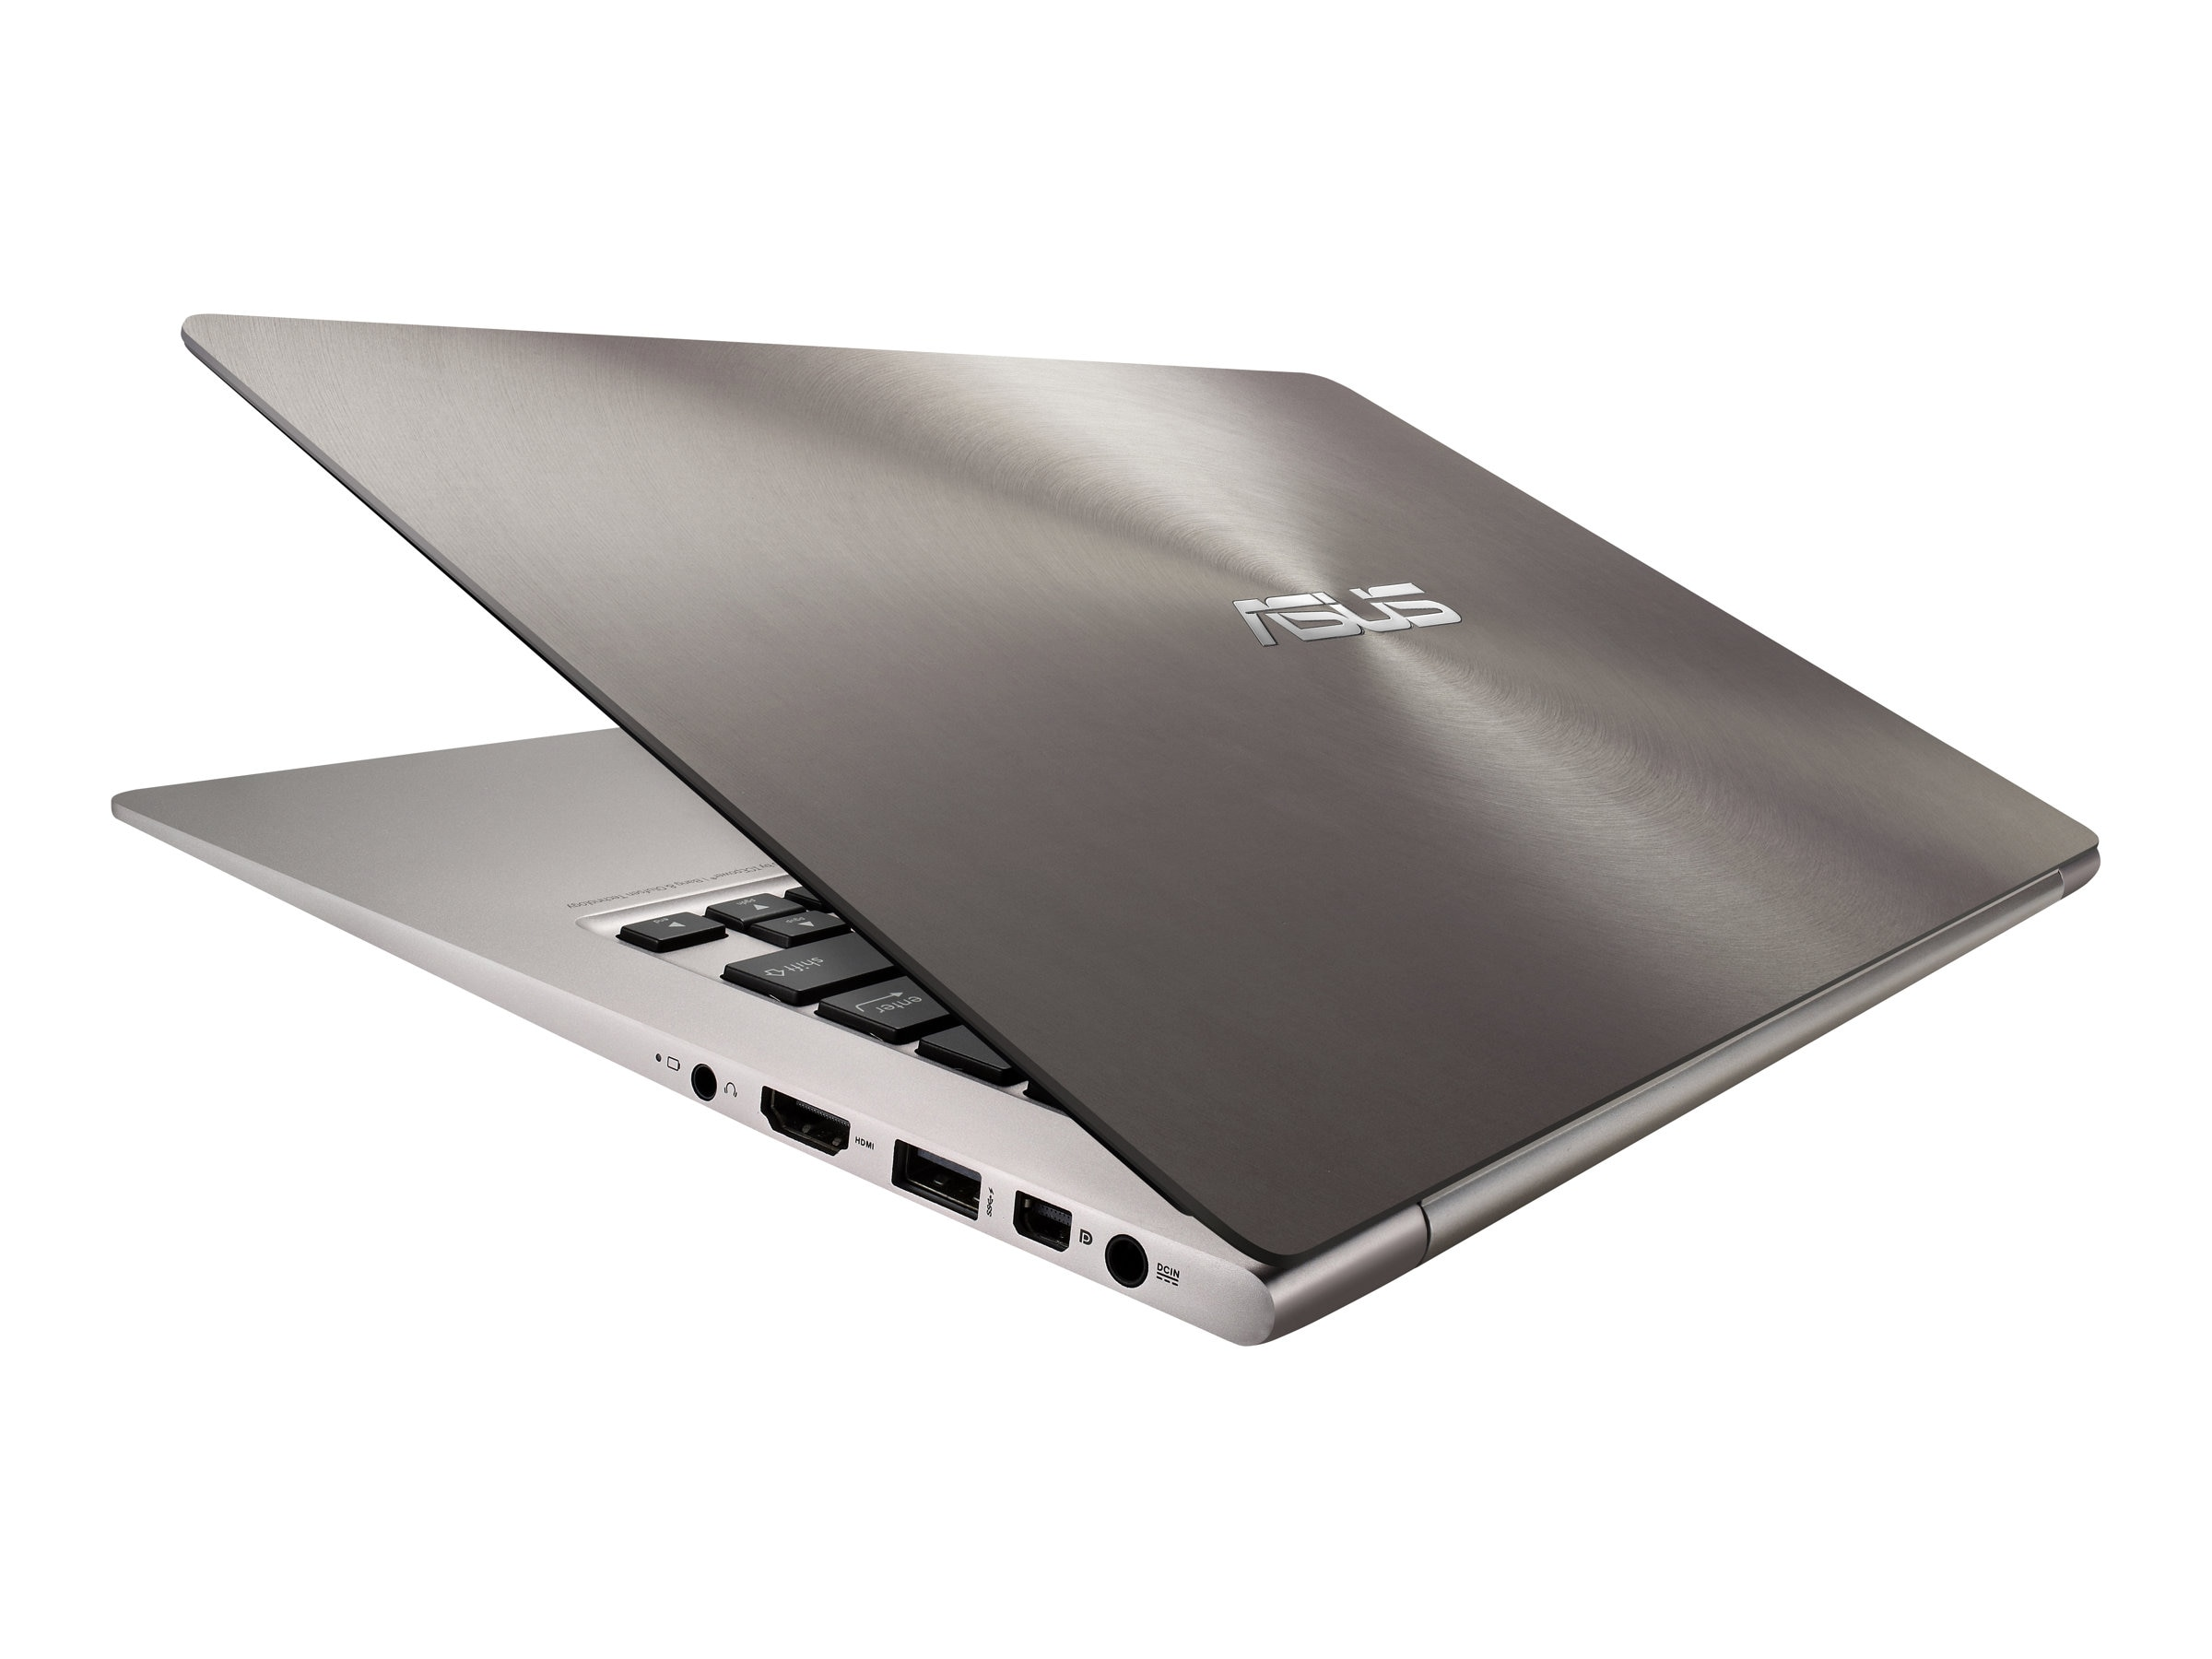 Asus UX303UA Notebook PC Core i5-6200U, UX303UA-XS54